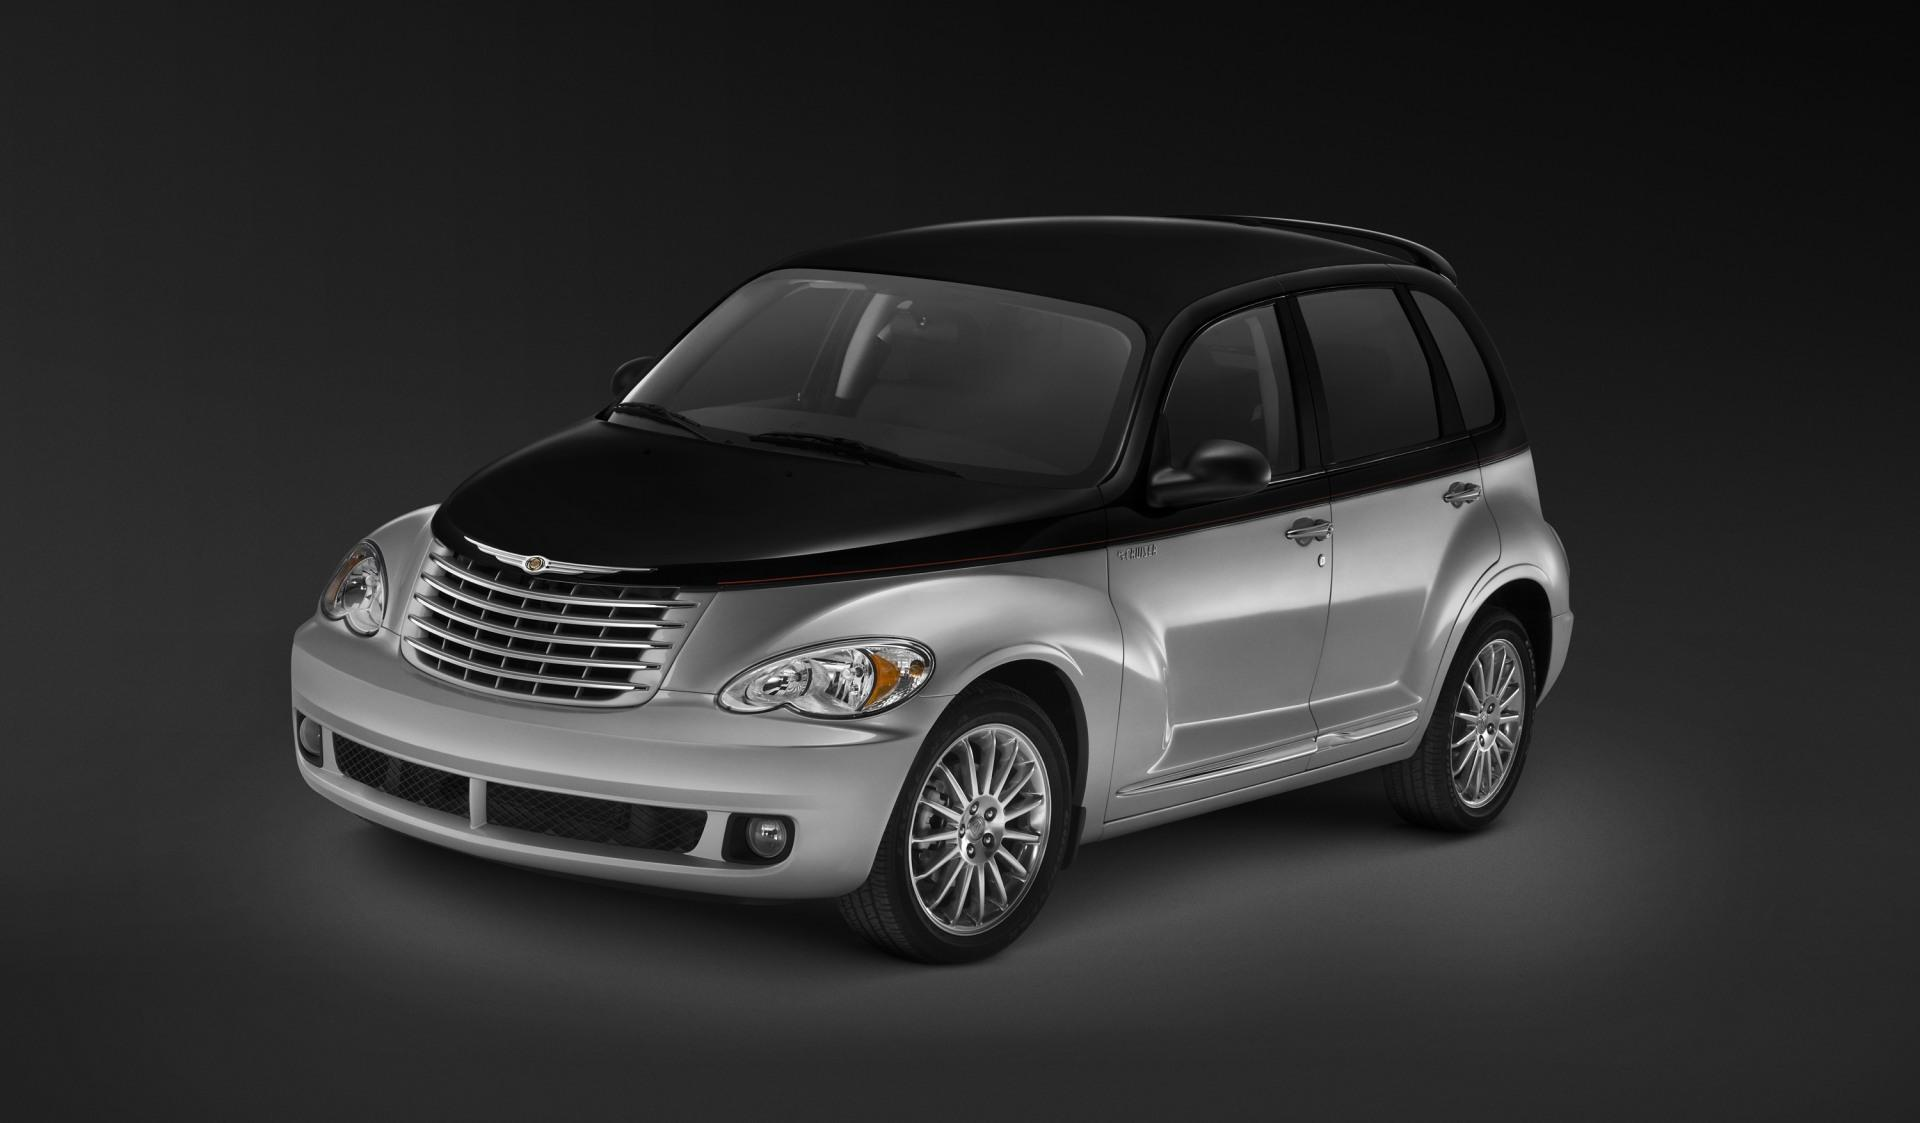 2010 chrysler pt cruiser couture edition. Black Bedroom Furniture Sets. Home Design Ideas